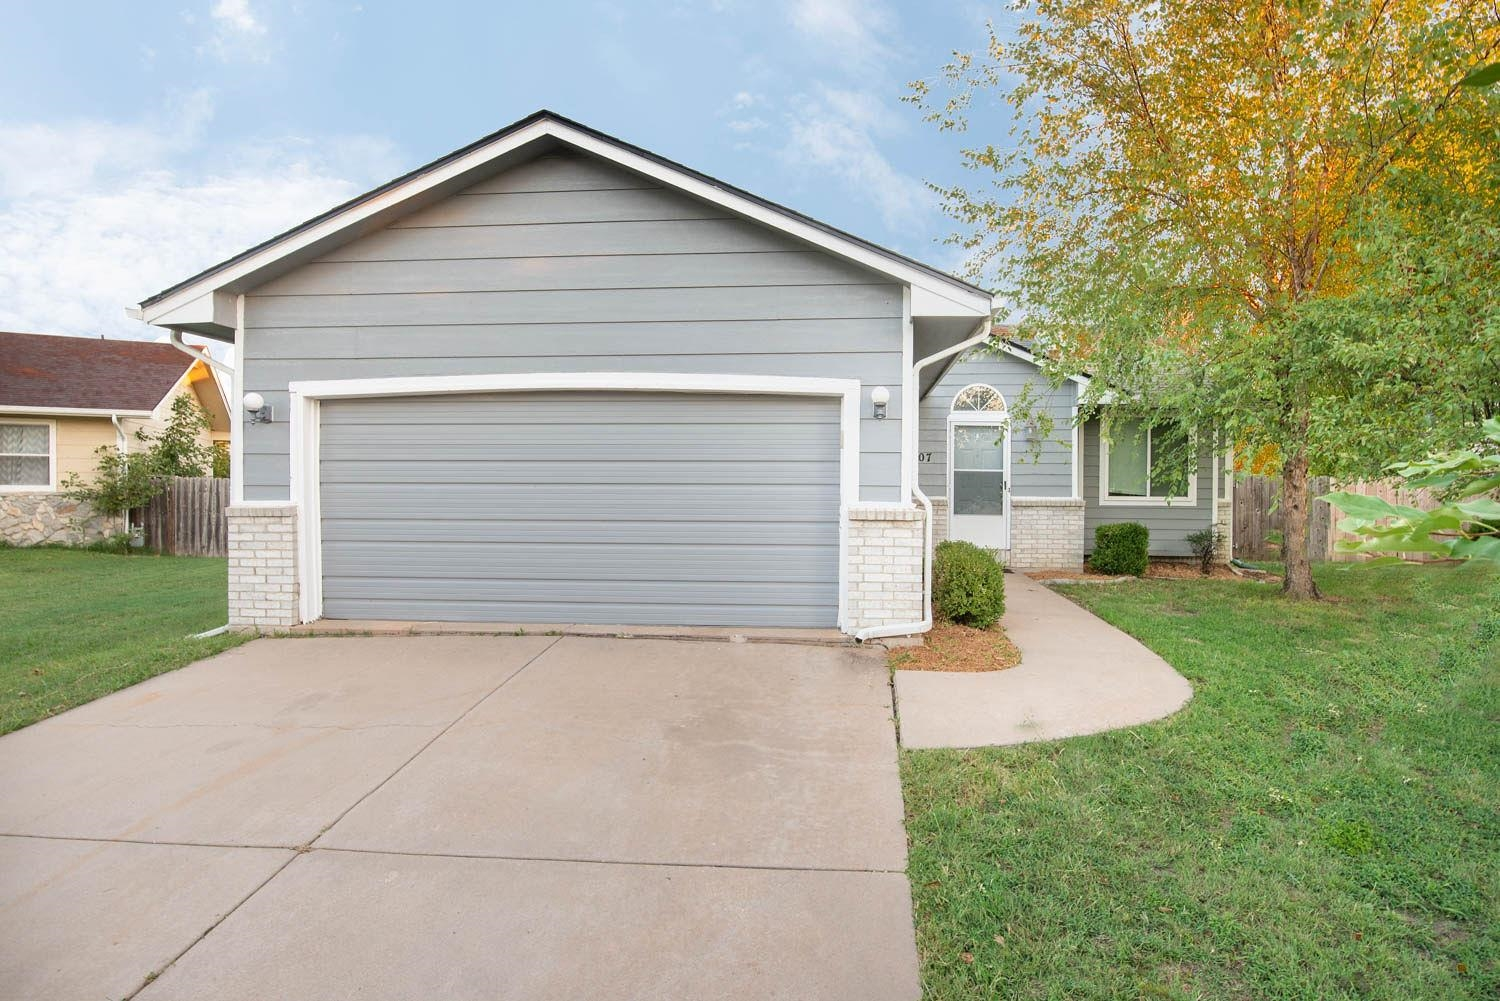 3 BED, 3 BATH, 2100+ SQ FT RANCH HOME IN A QUIET AREA THAT IS VALUE PRICED & READY FOR YOU TODAY!  W